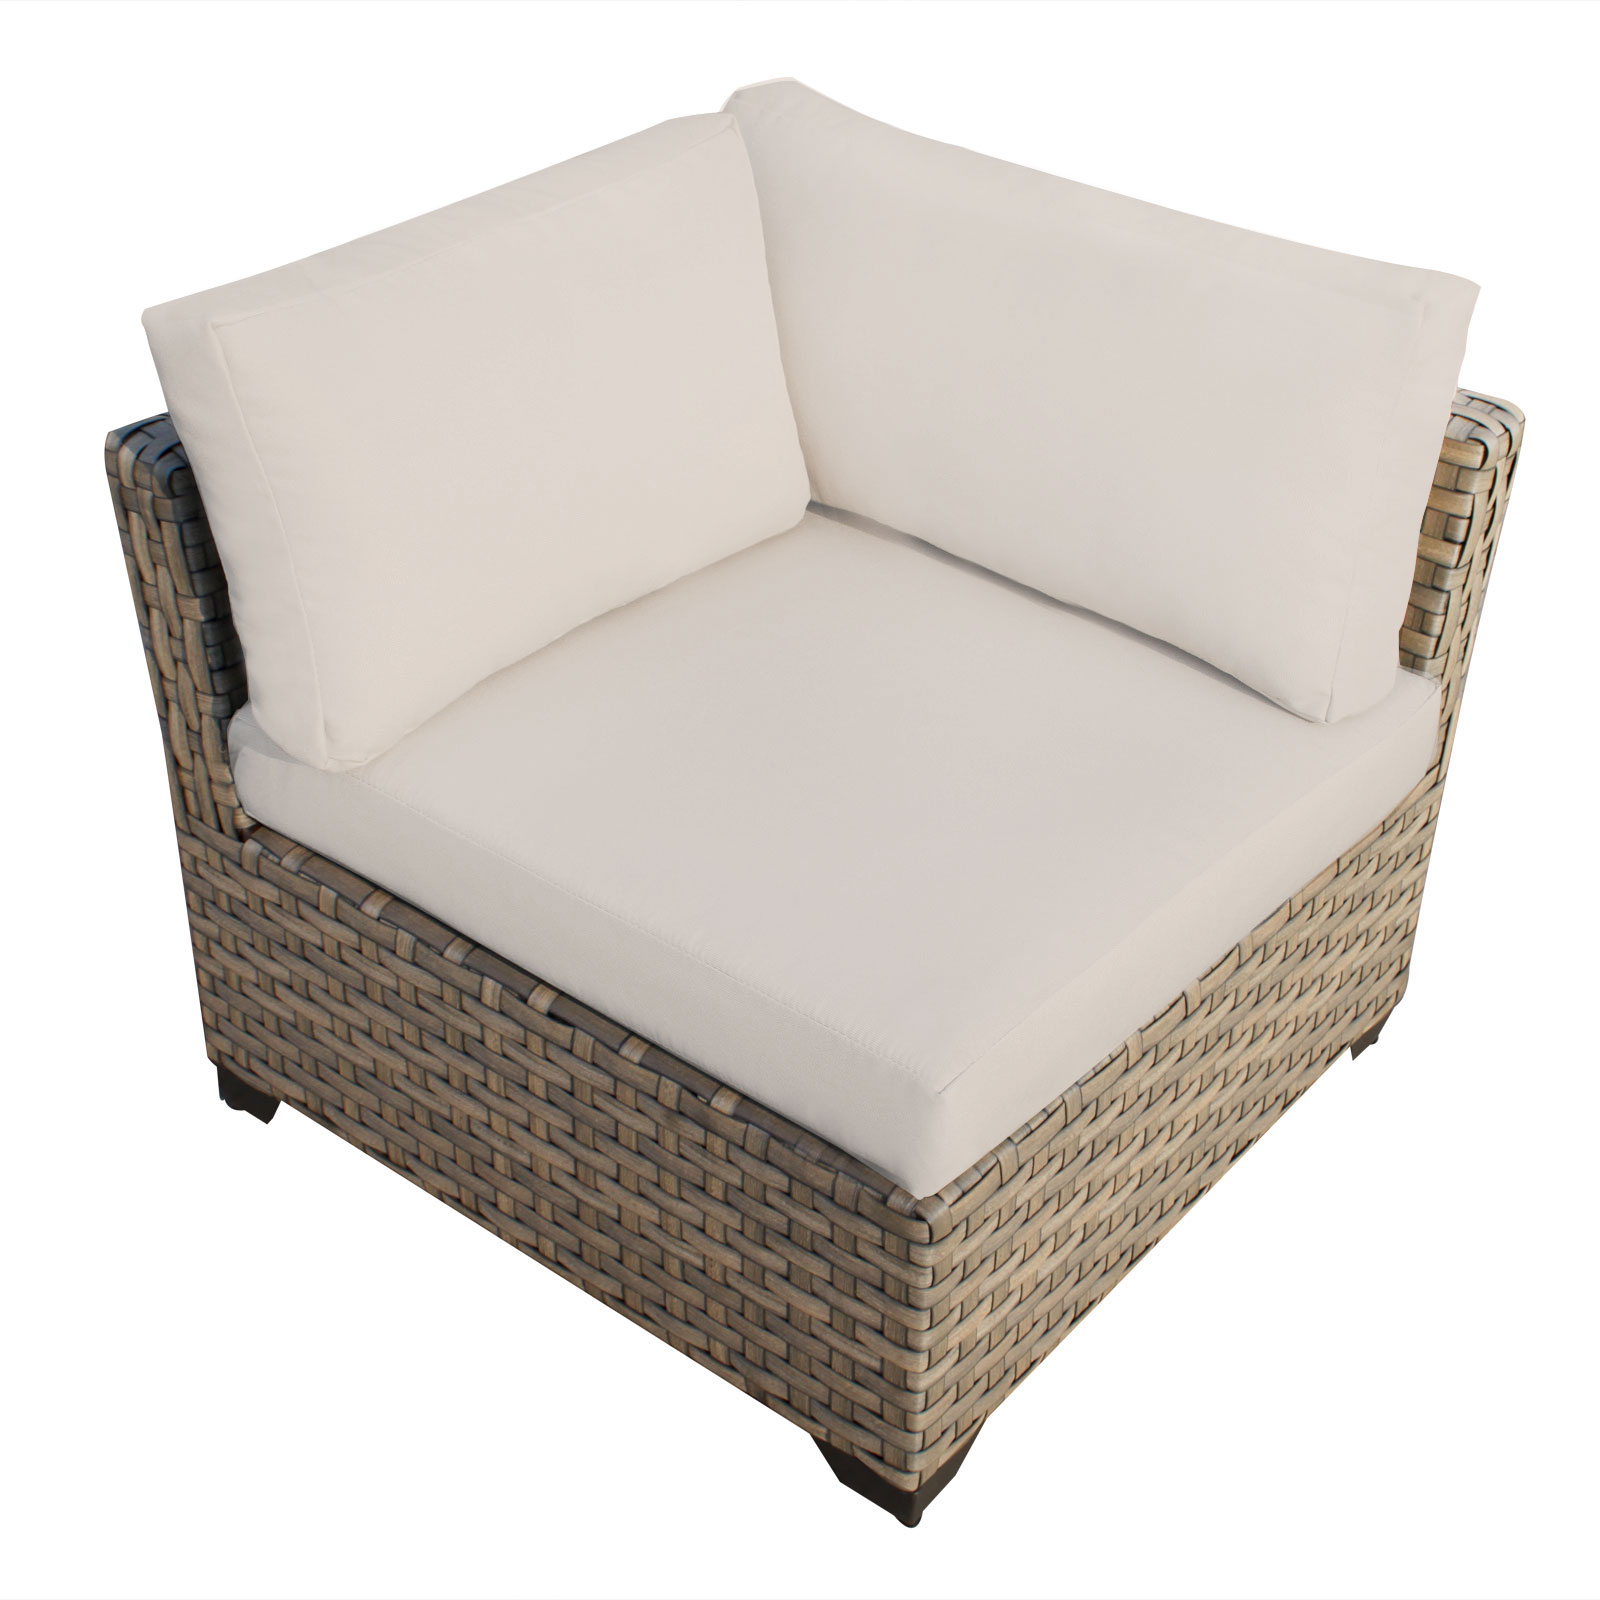 Most Popular Outdoor 13 Piece Wicker Patio Sets With Cushions Throughout Hampton 13 Piece Outdoor Wicker Patio Furniture Set 13a (View 25 of 25)